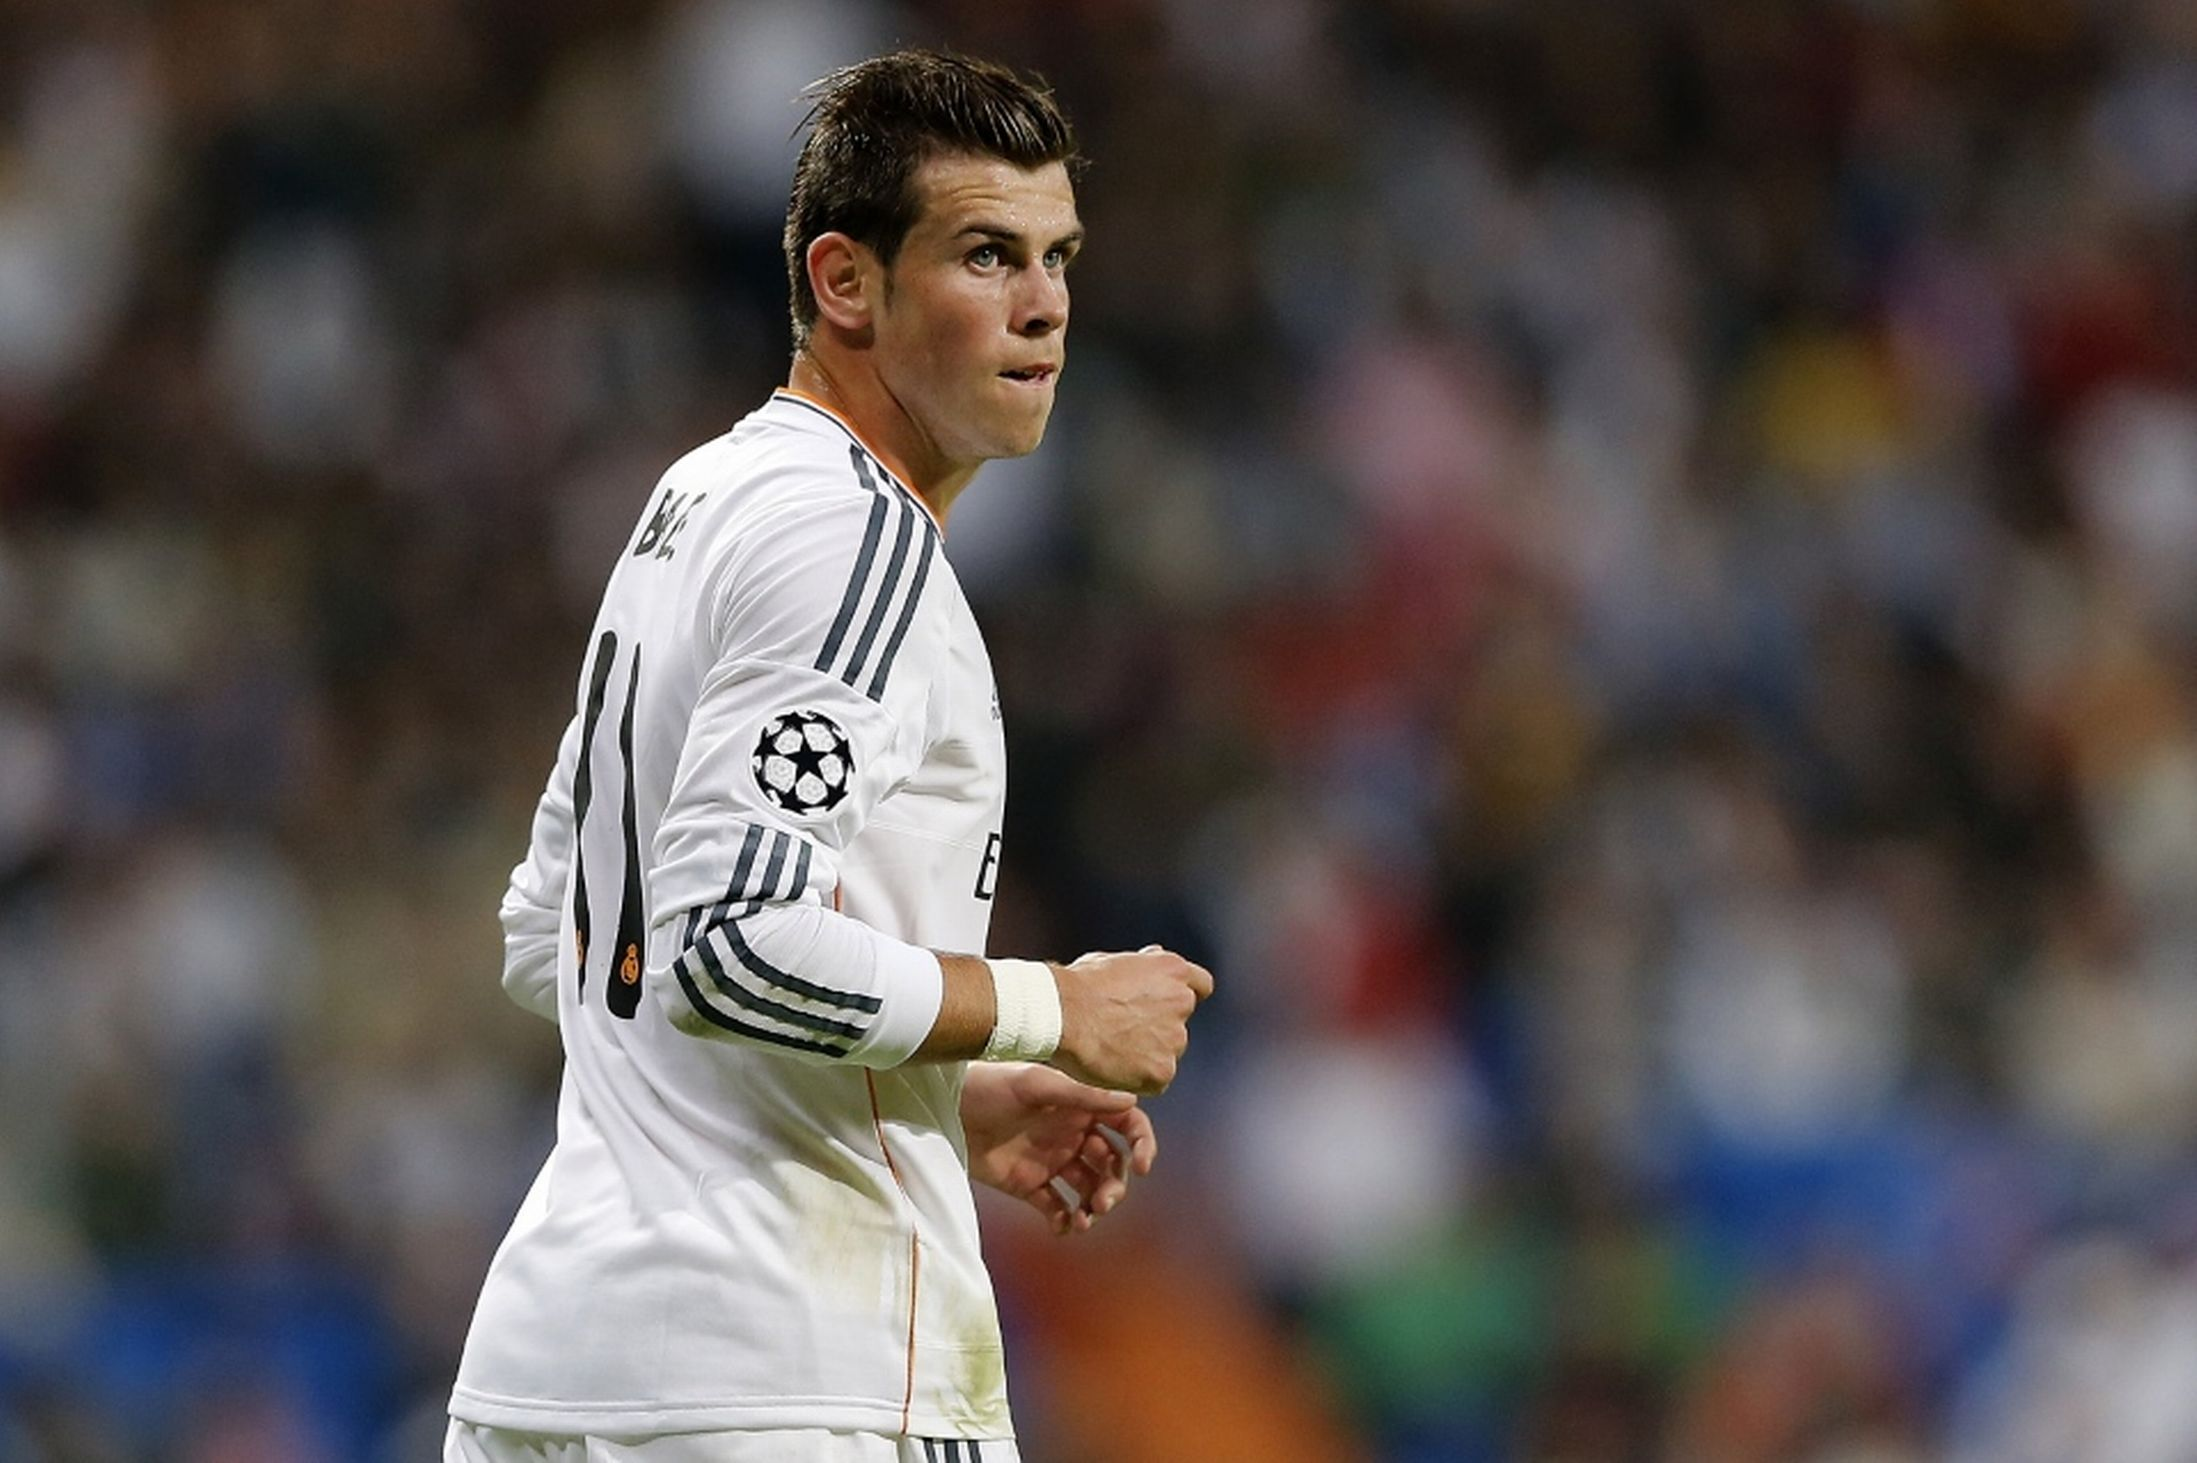 Best-Expert-Football-Player-Gareth-Bale-Pc-Hi-def-Wallpaper-image-Gallery